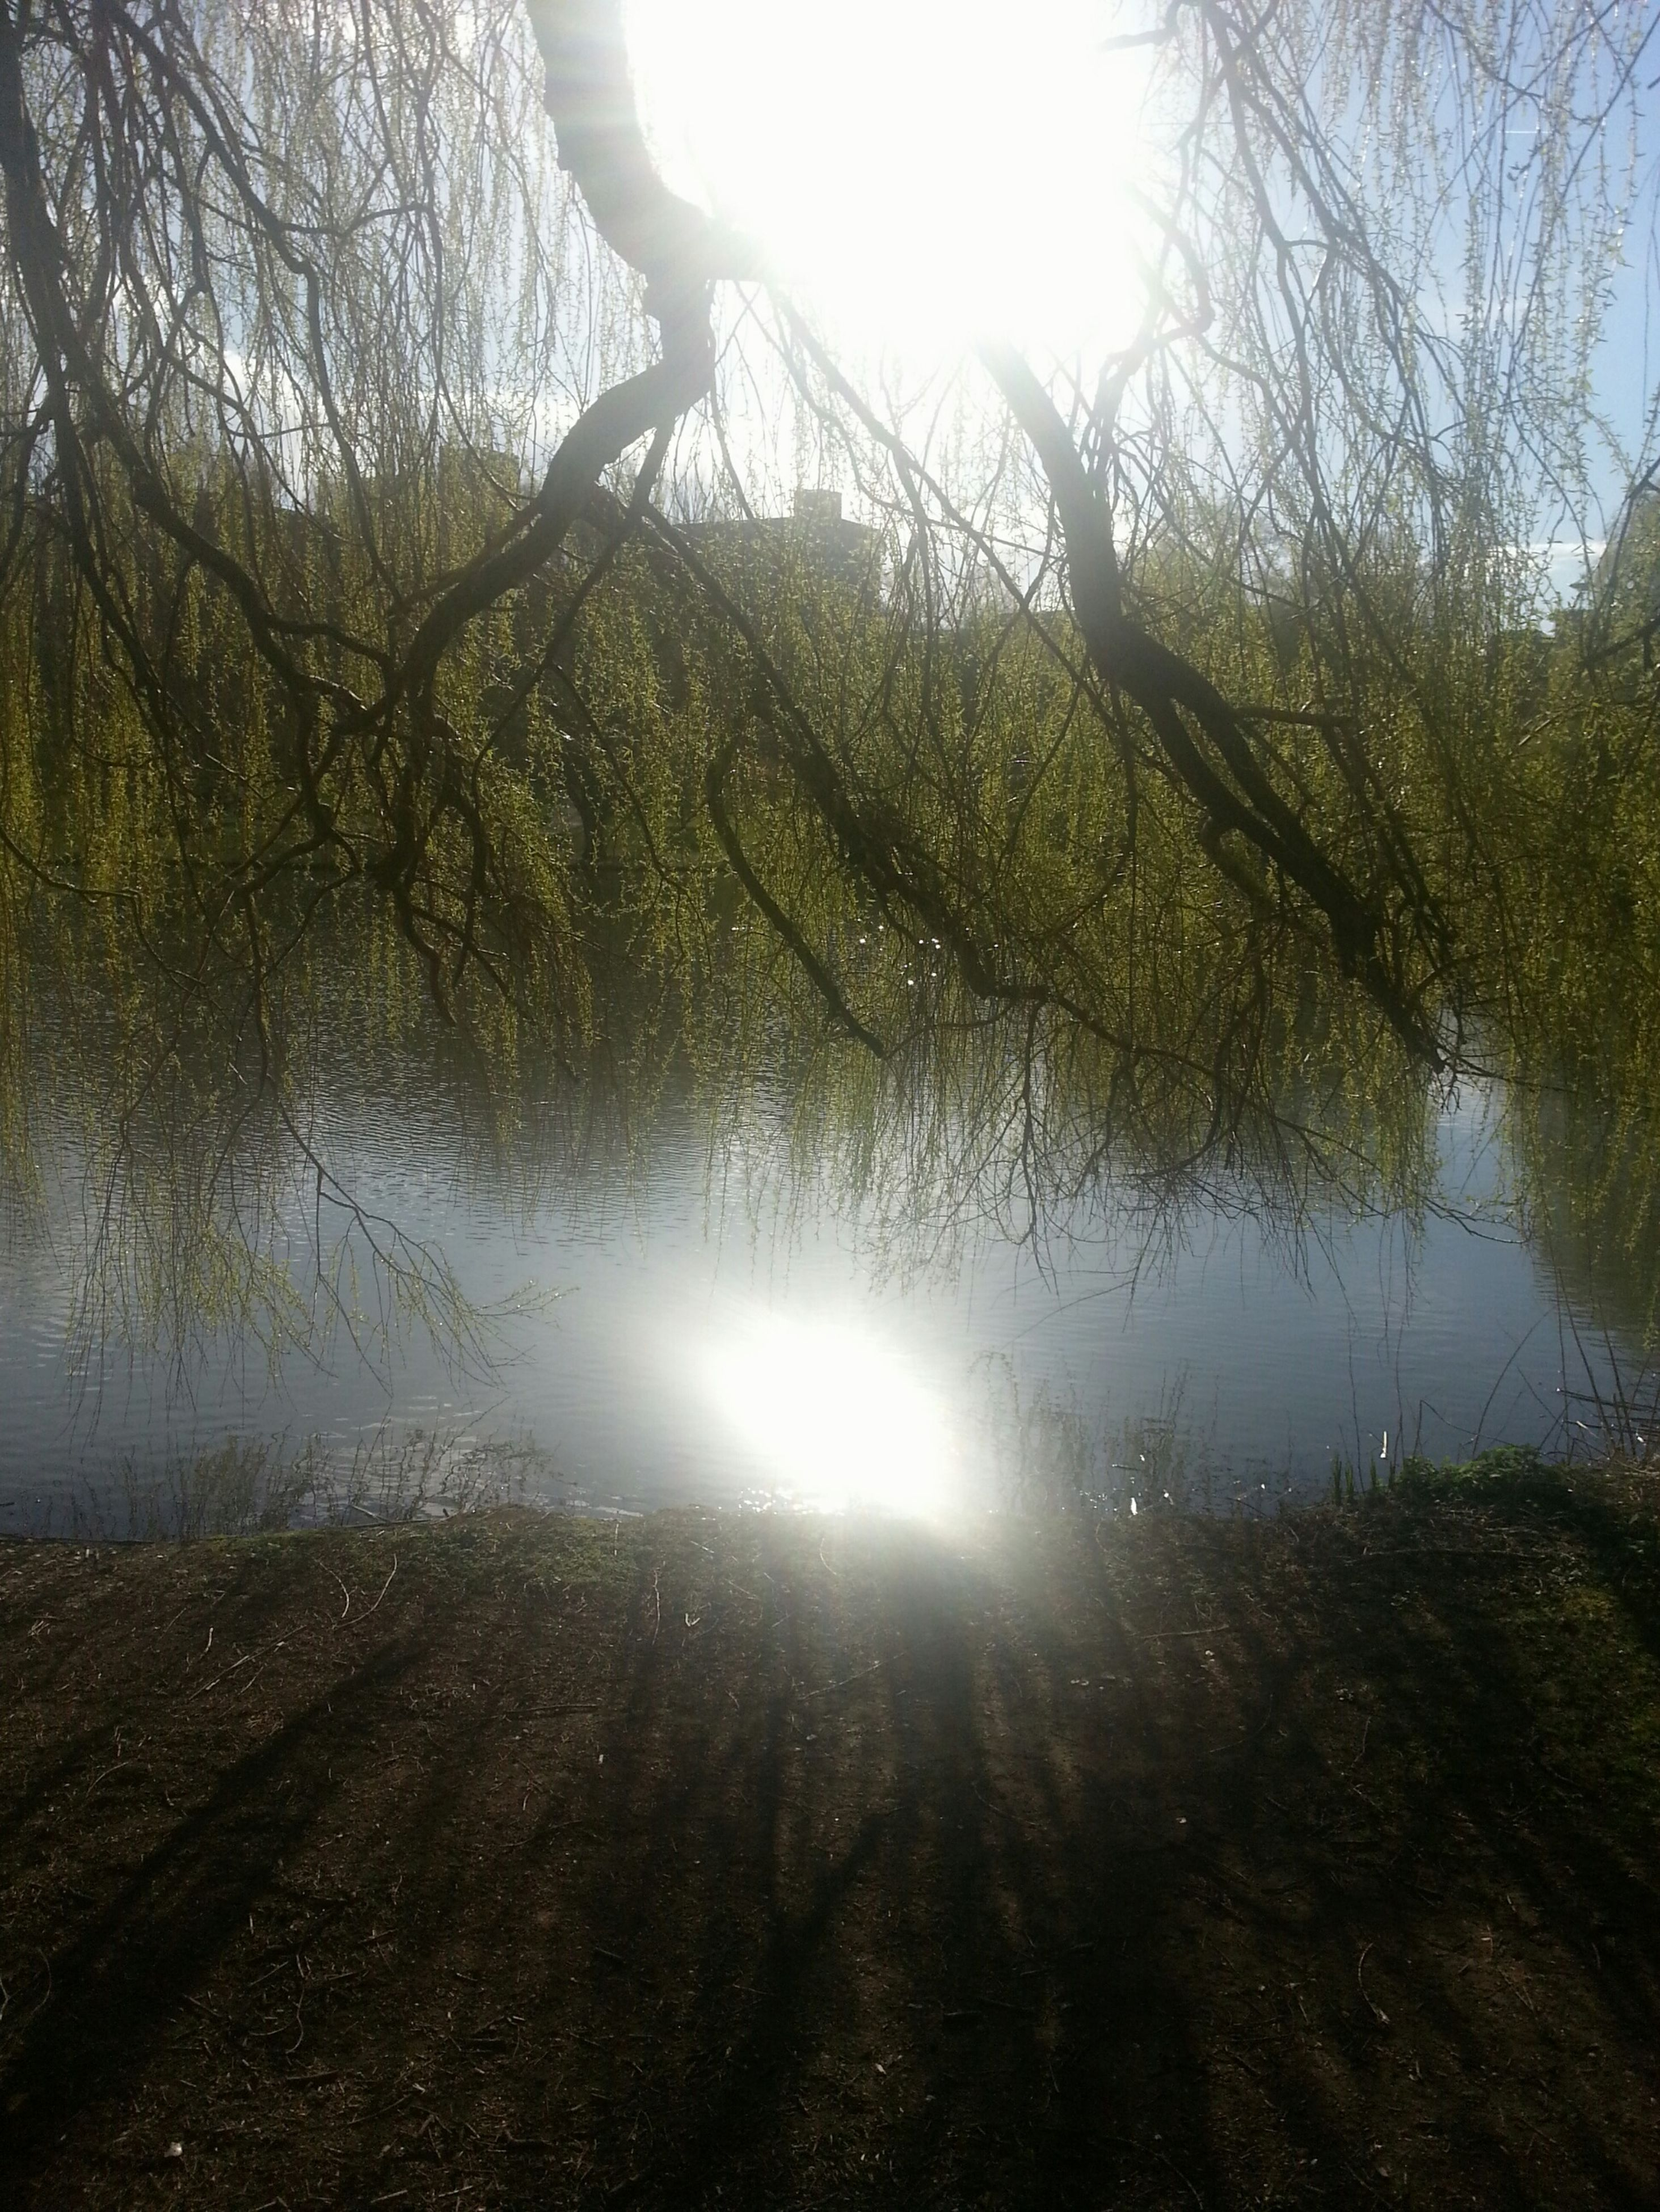 tree, water, reflection, sun, tranquility, tranquil scene, lake, sunlight, nature, beauty in nature, sunbeam, scenics, lens flare, sky, growth, branch, day, non-urban scene, forest, idyllic